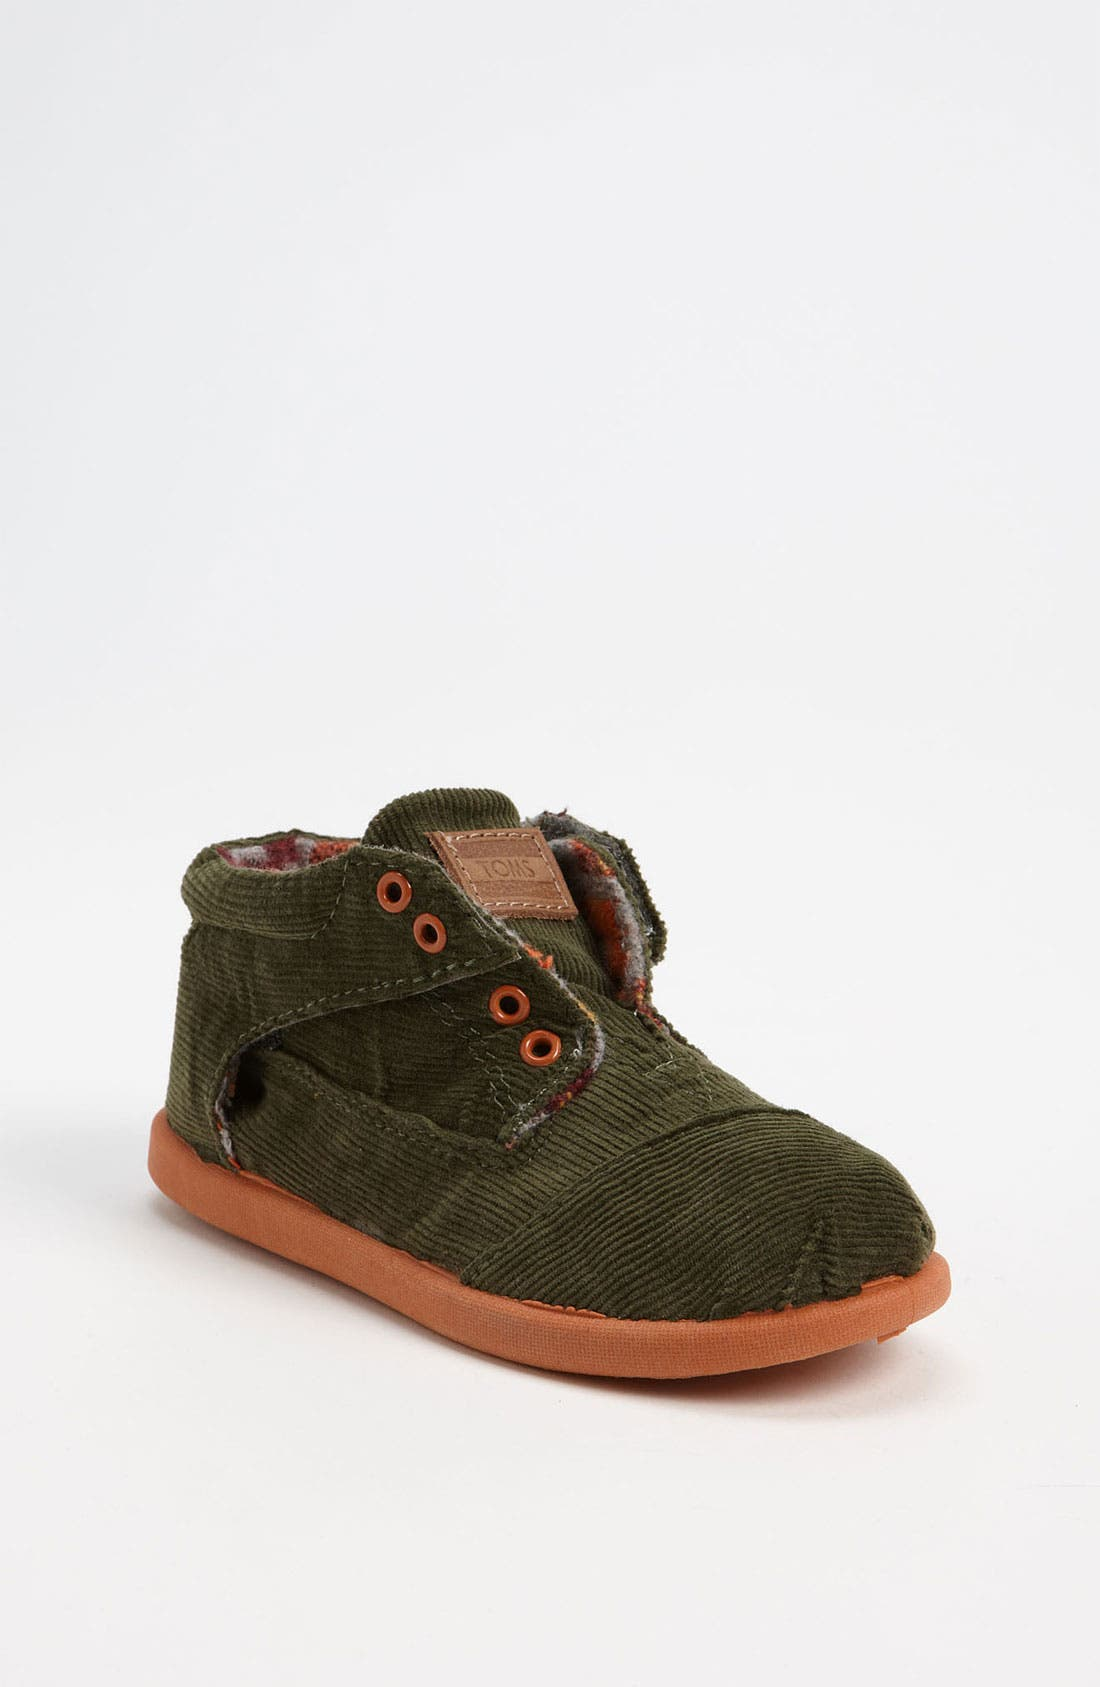 Alternate Image 1 Selected - TOMS 'Botas' Corduroy Boot (Baby, Walker & Toddler)